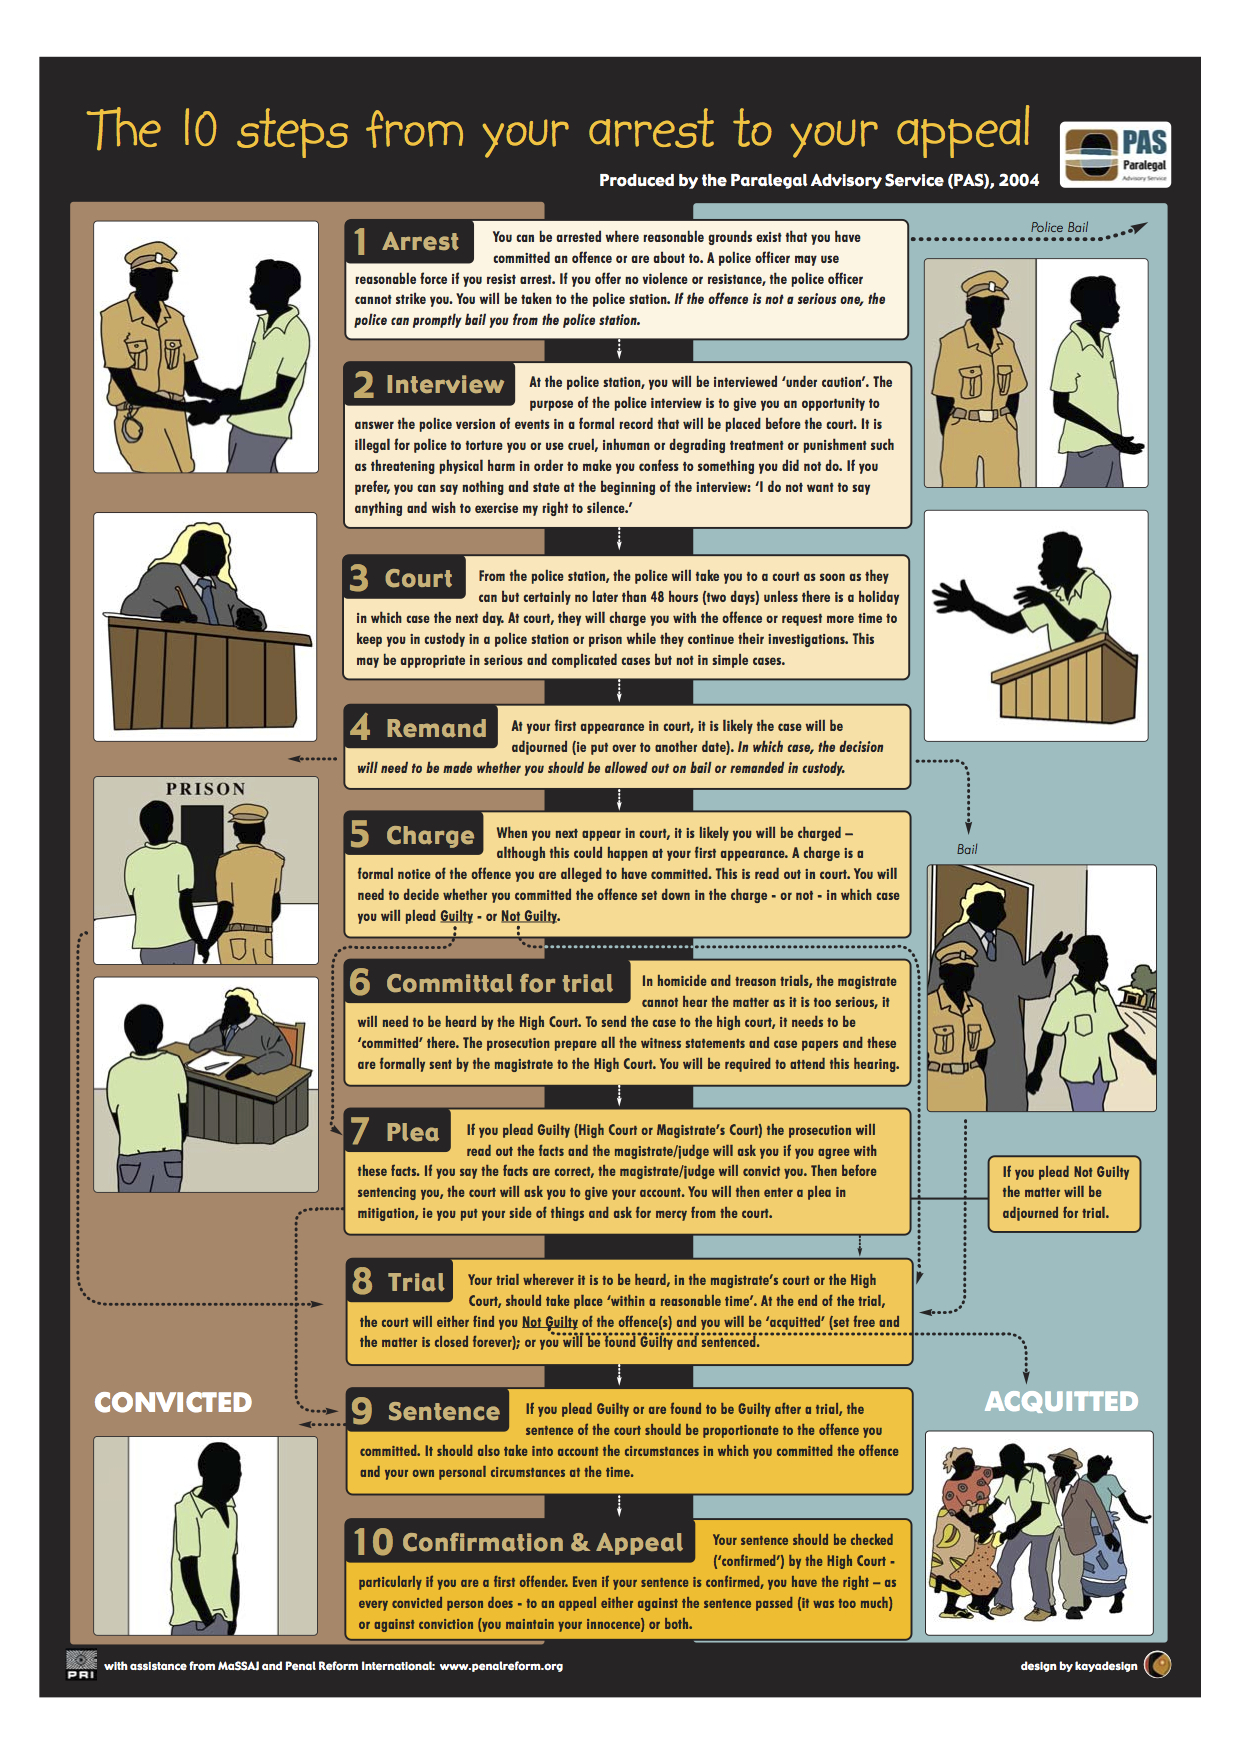 A poster produced by the Paralegal Advisory Service in Malawi